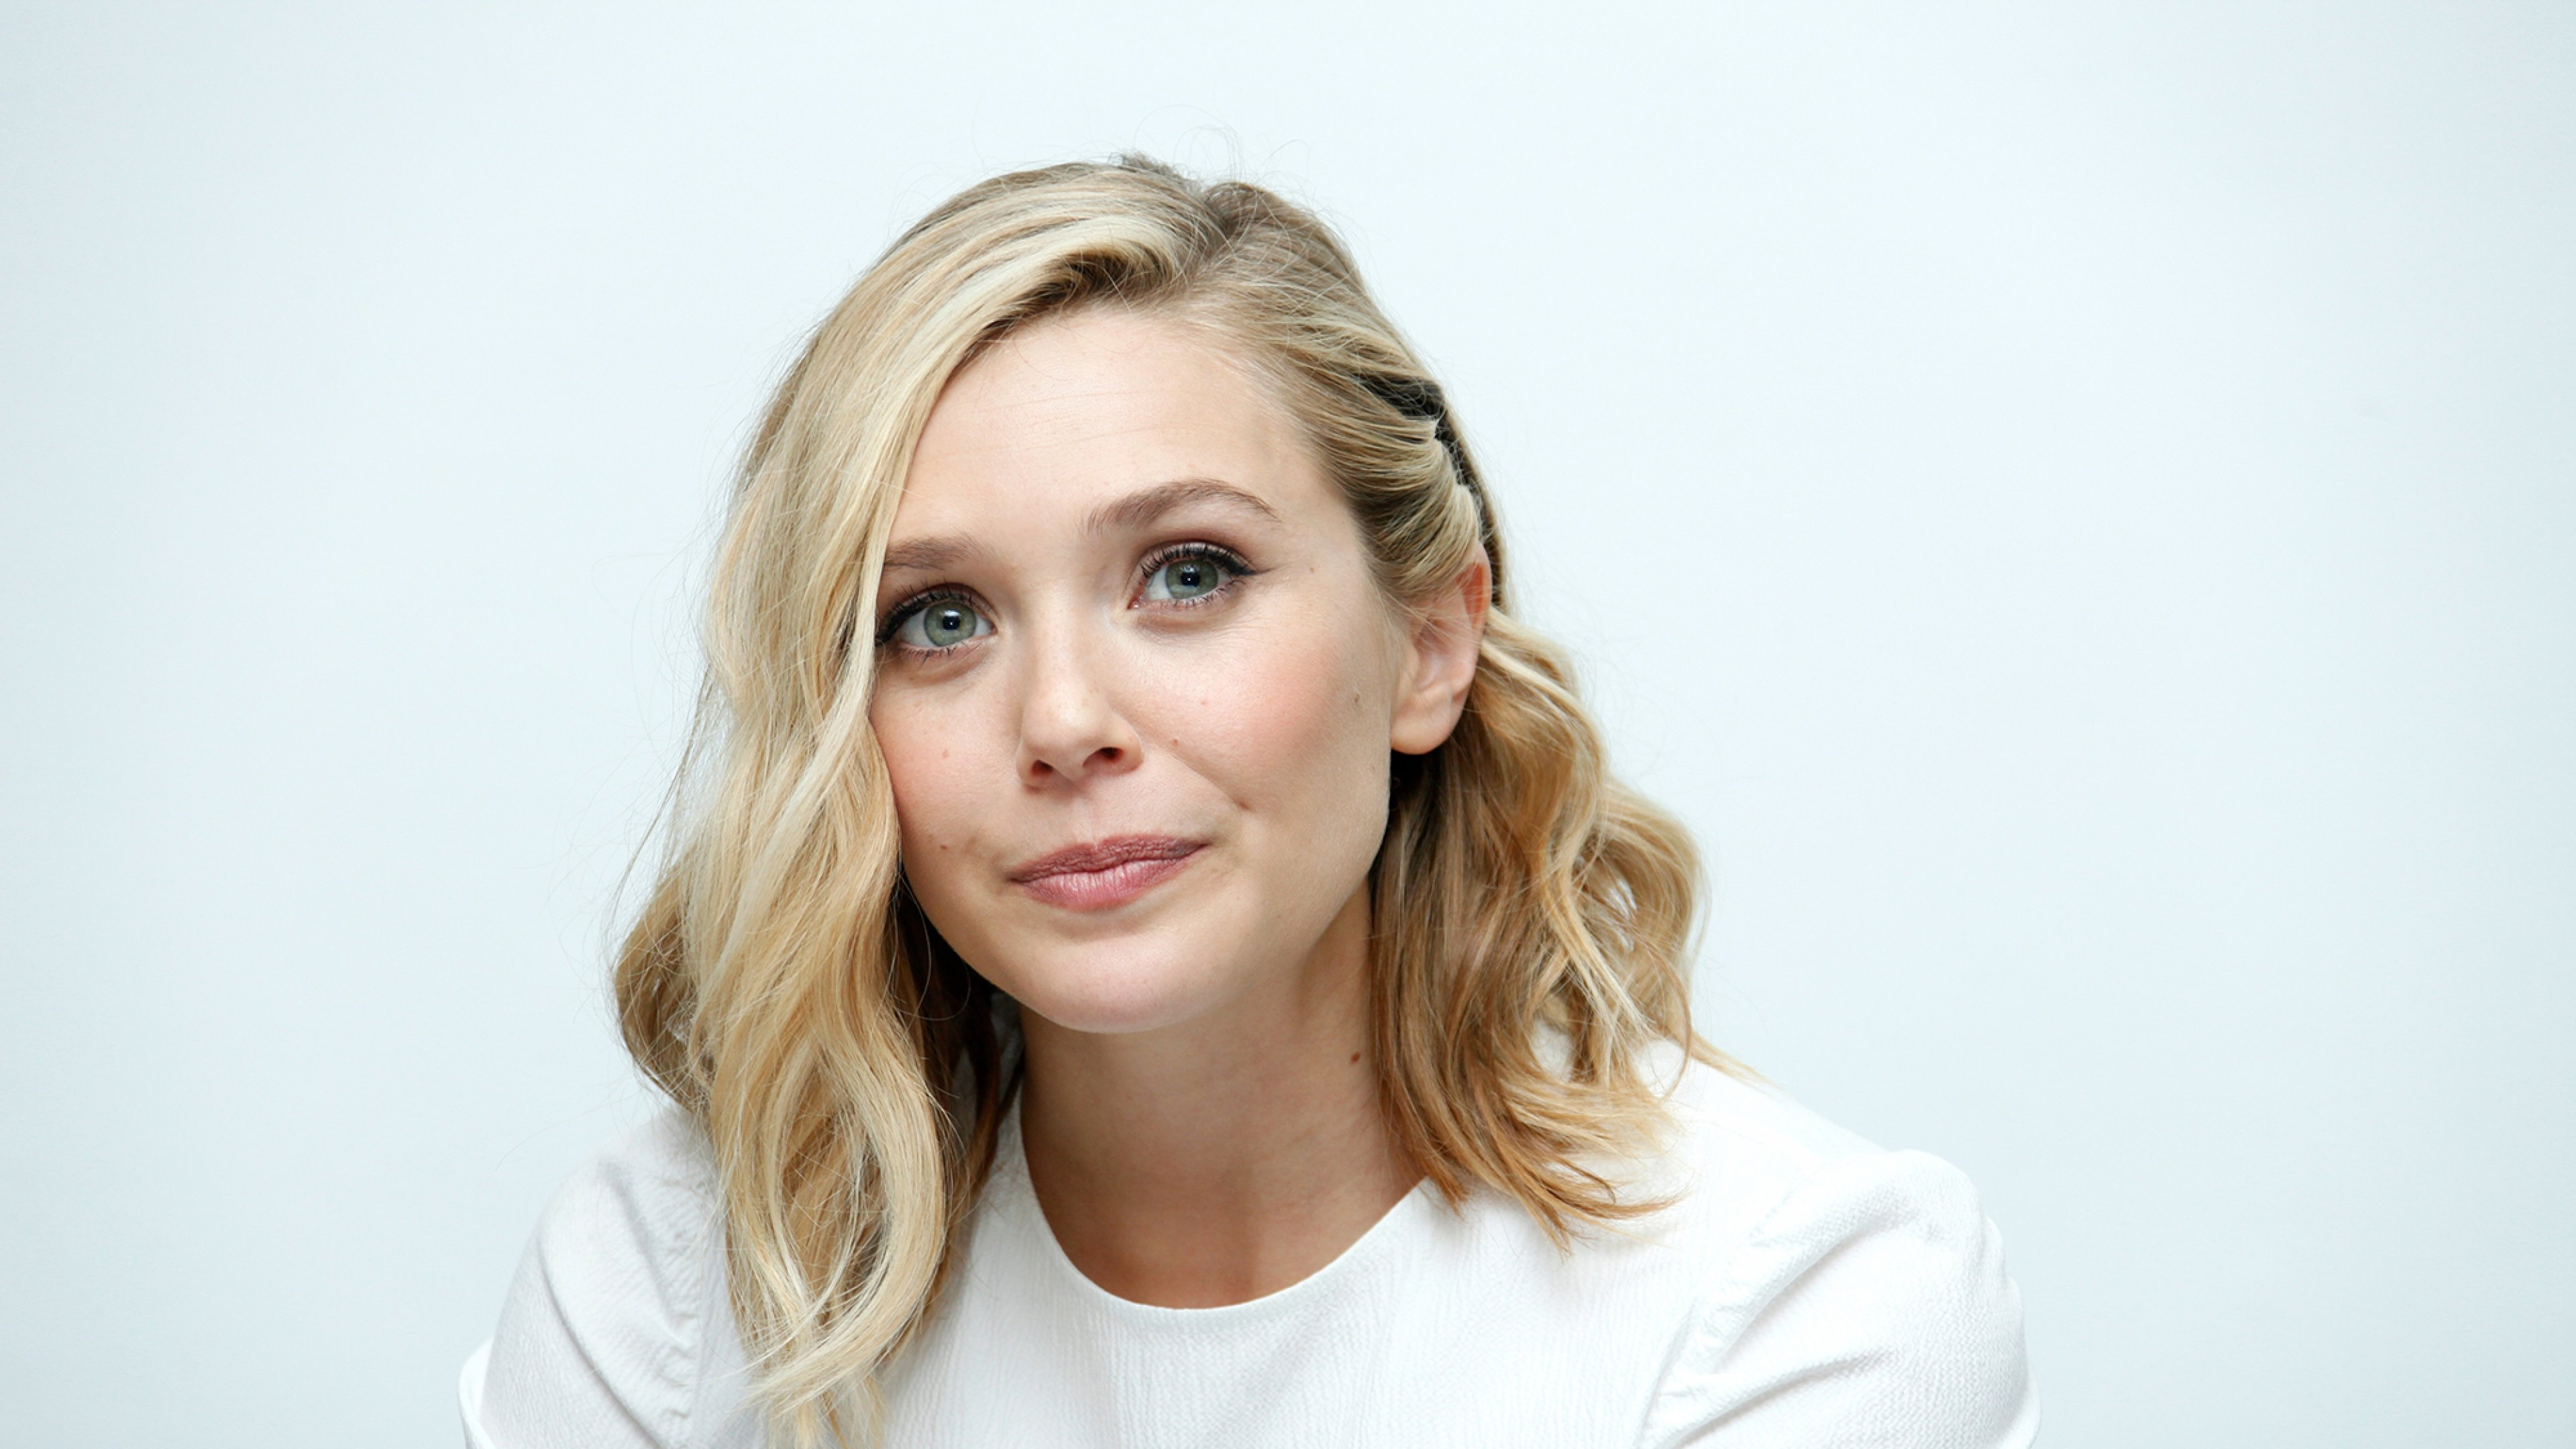 Elizabeth Olsen Widescreen Wallpaper 12028 3840x2160 3840x2160